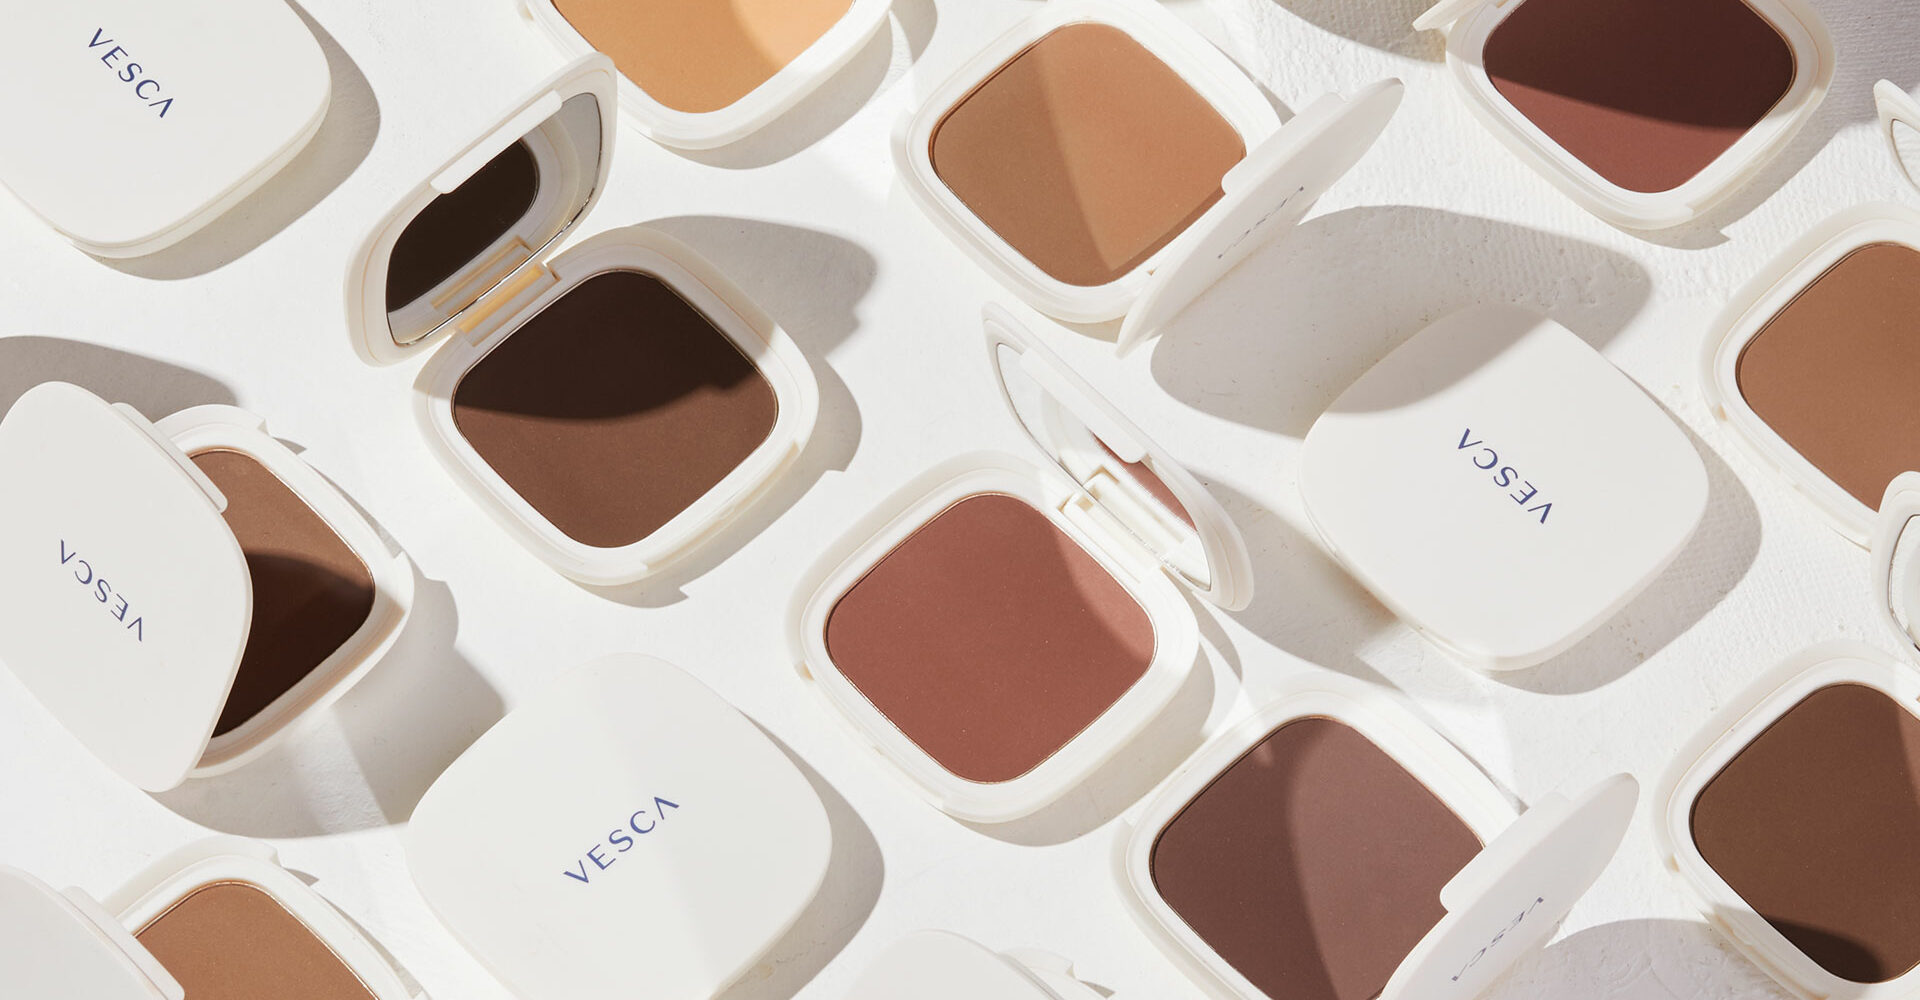 """""""Truly Inclusive Outside Of Foundation And Concealer"""": Emerging Cosmetics Brand Vesca Wants To Get Everyone Glowing"""